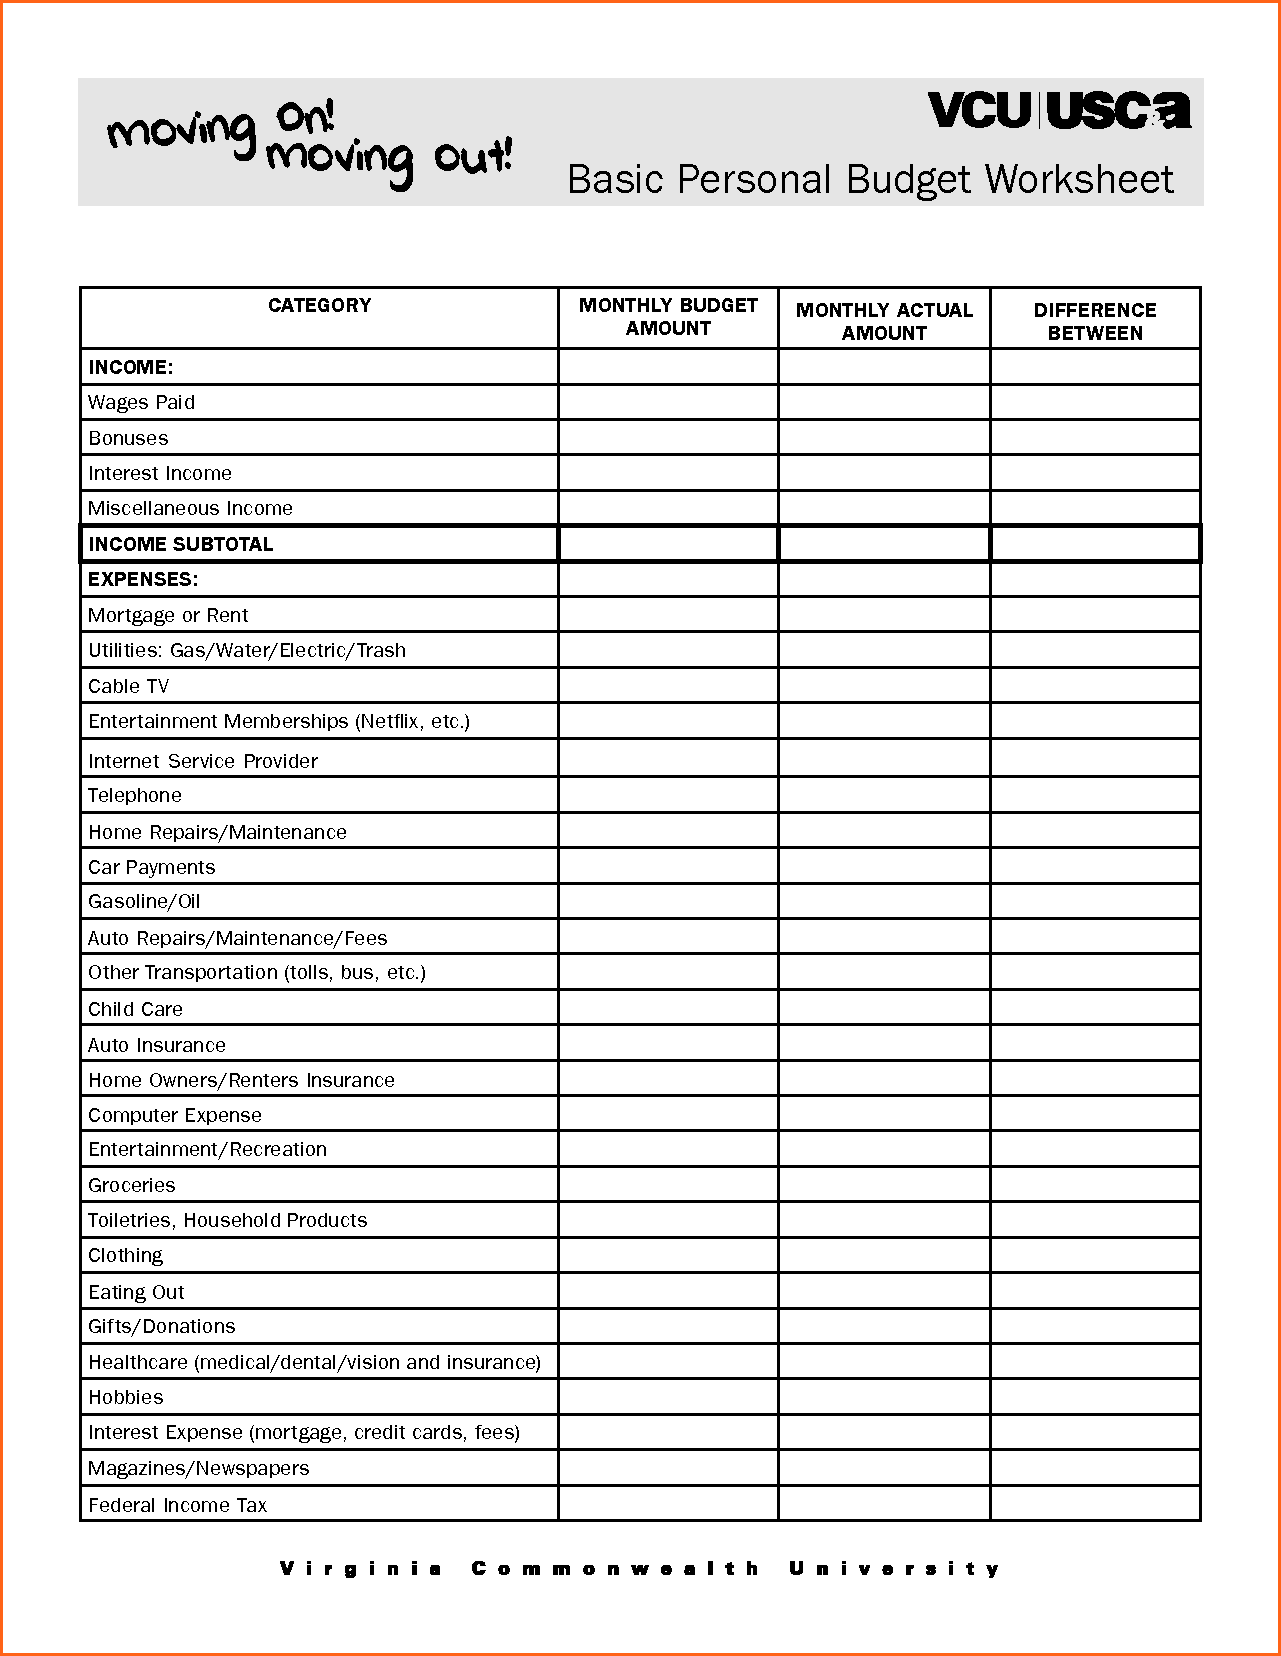 worksheet Free Household Budget Worksheet simple budget template letter household free home design idea free